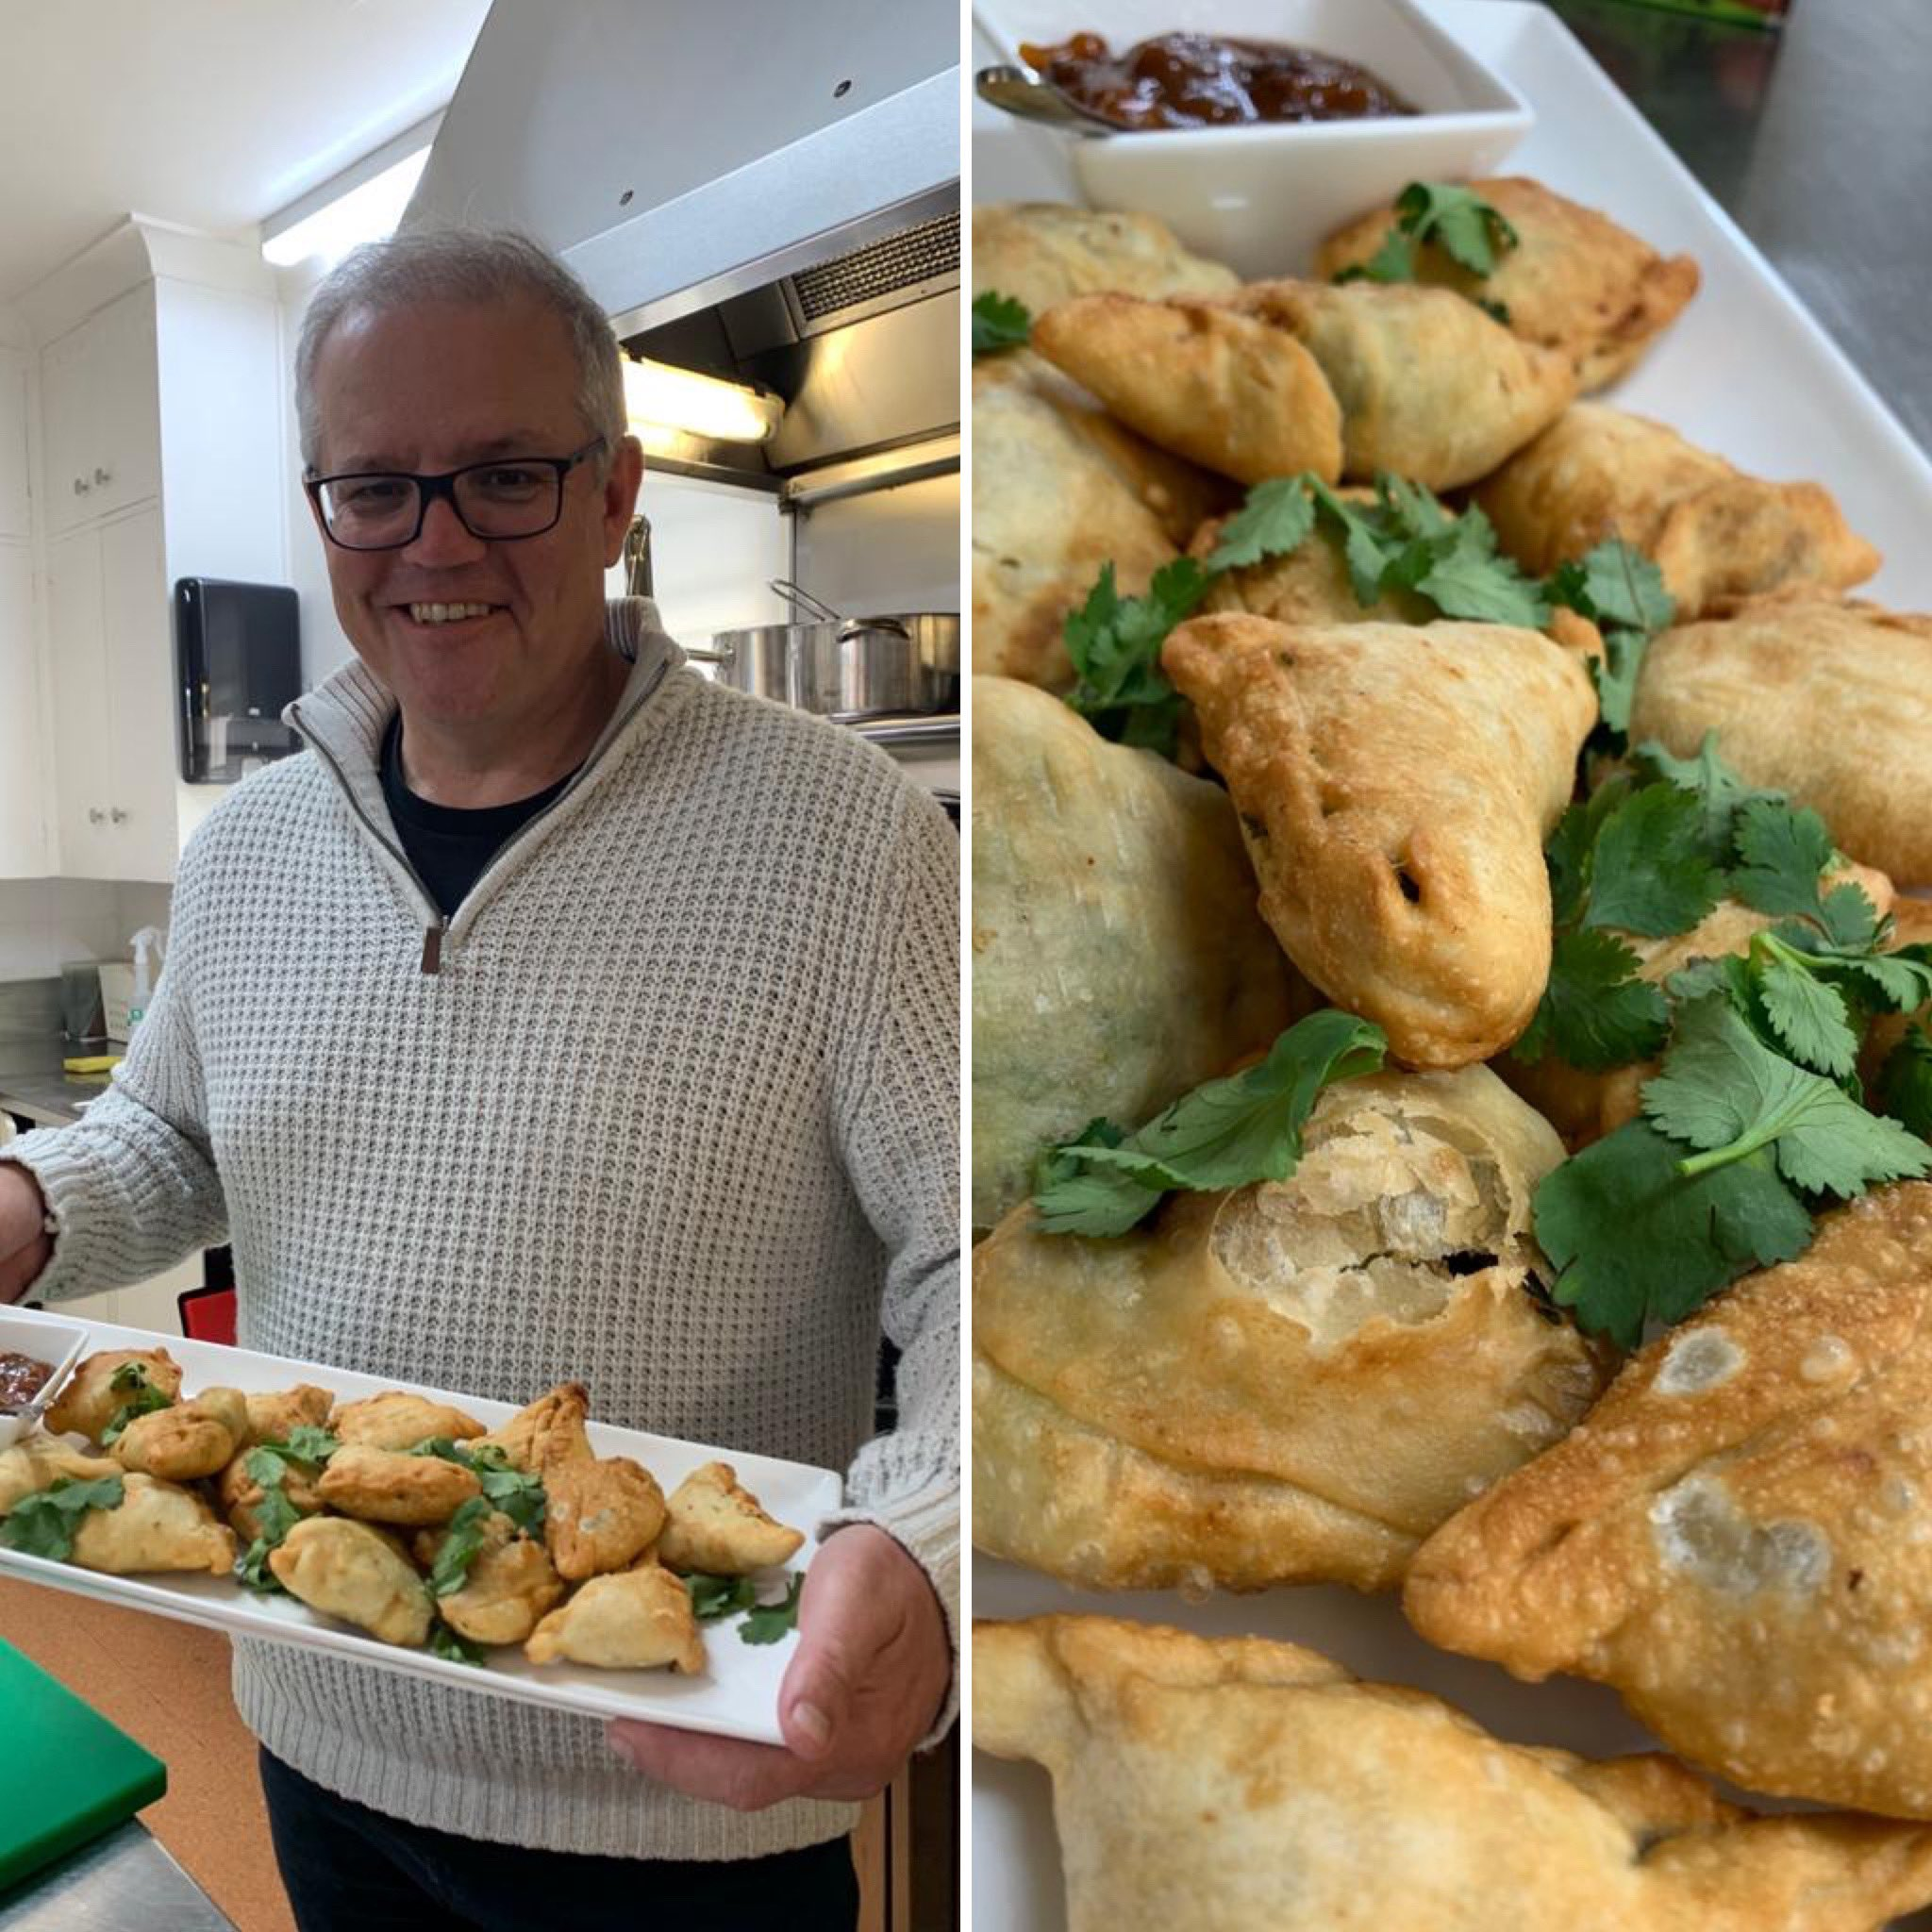 Samosa Diplomacy Comes To The Fore As Aussie PM Pays Tribute to the Fried Wonder